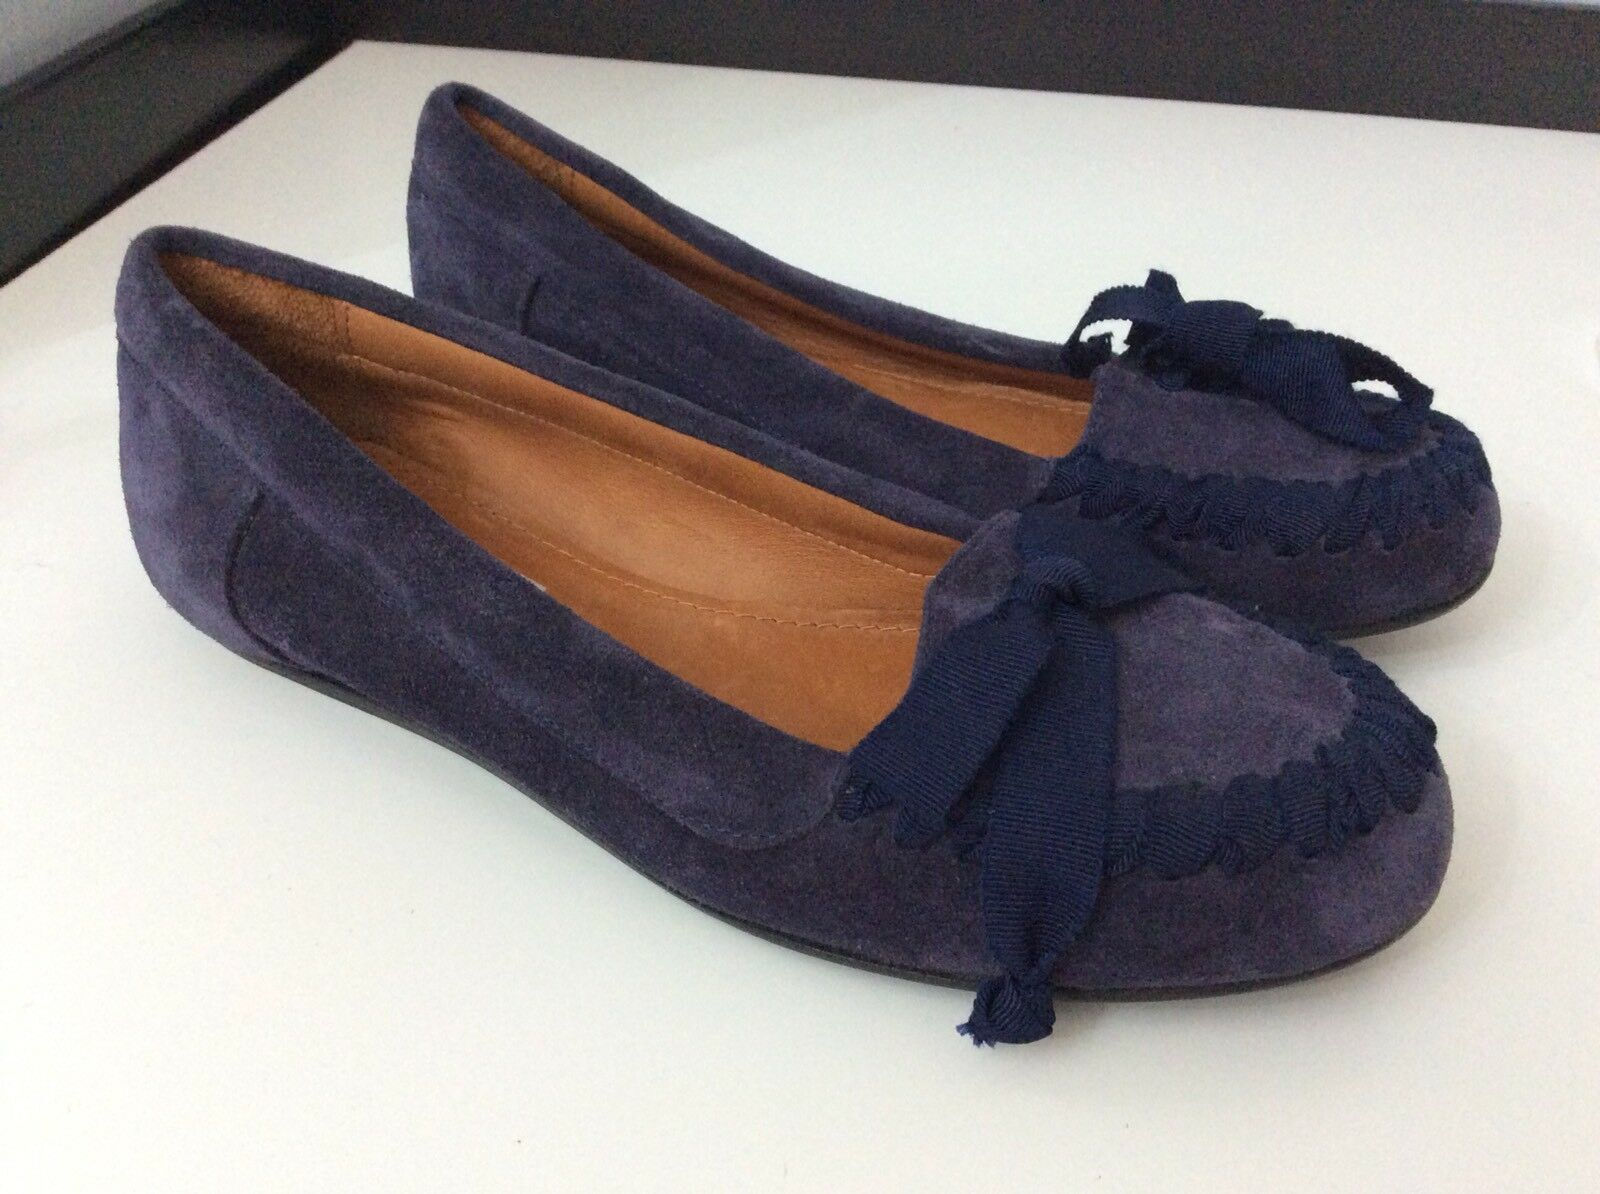 Lanvin NEW Liliac Suede Leather zapatos Ballerinas flats Talla 37.5 Uk 4.5 Rrp